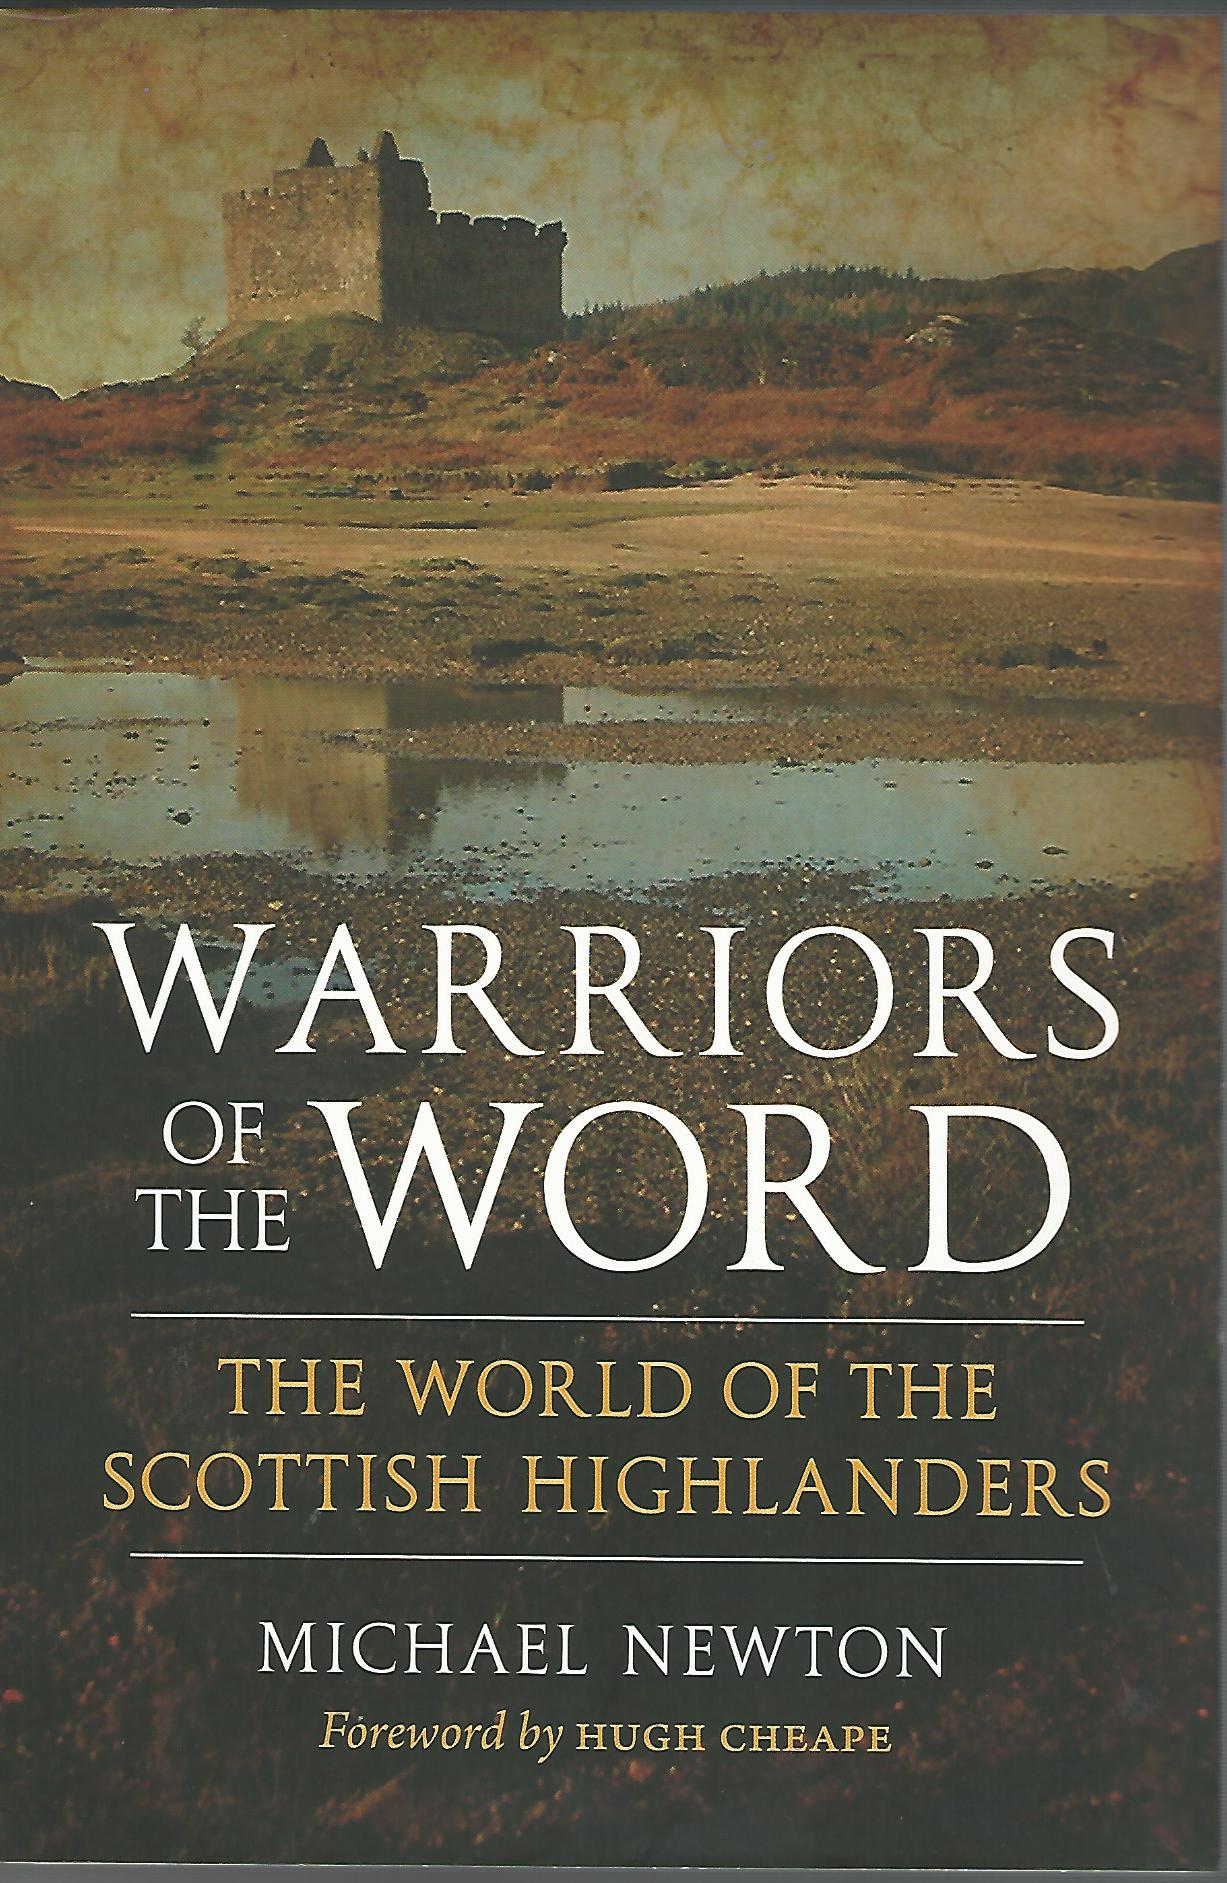 Image for Warriors of the Word: The World of the Scottish Highlanders.